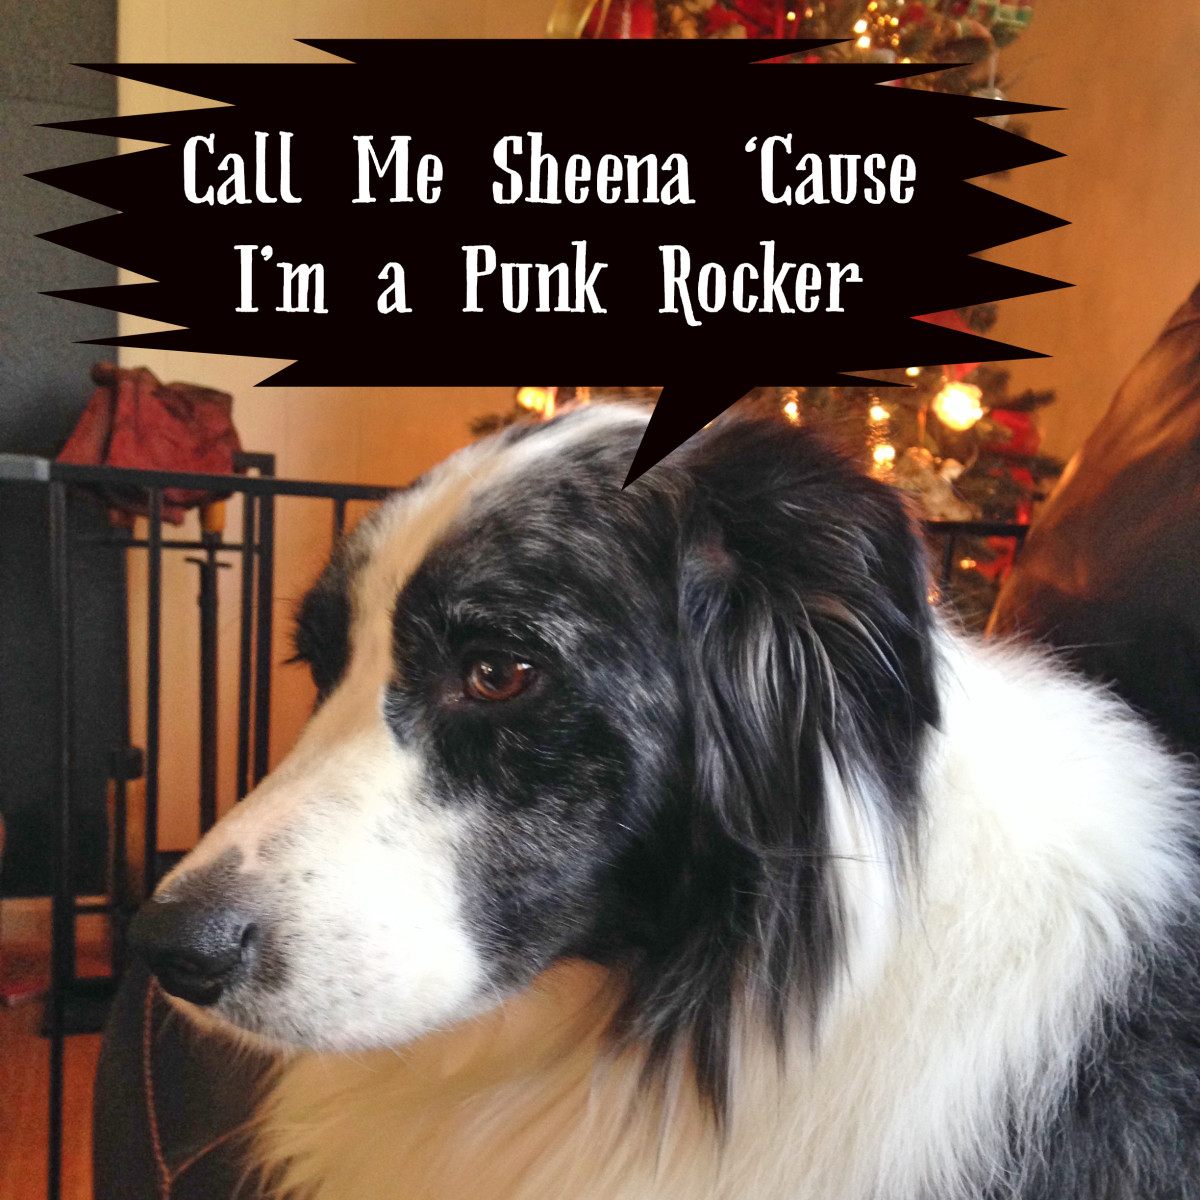 Dog names inspired by punk rock songs.